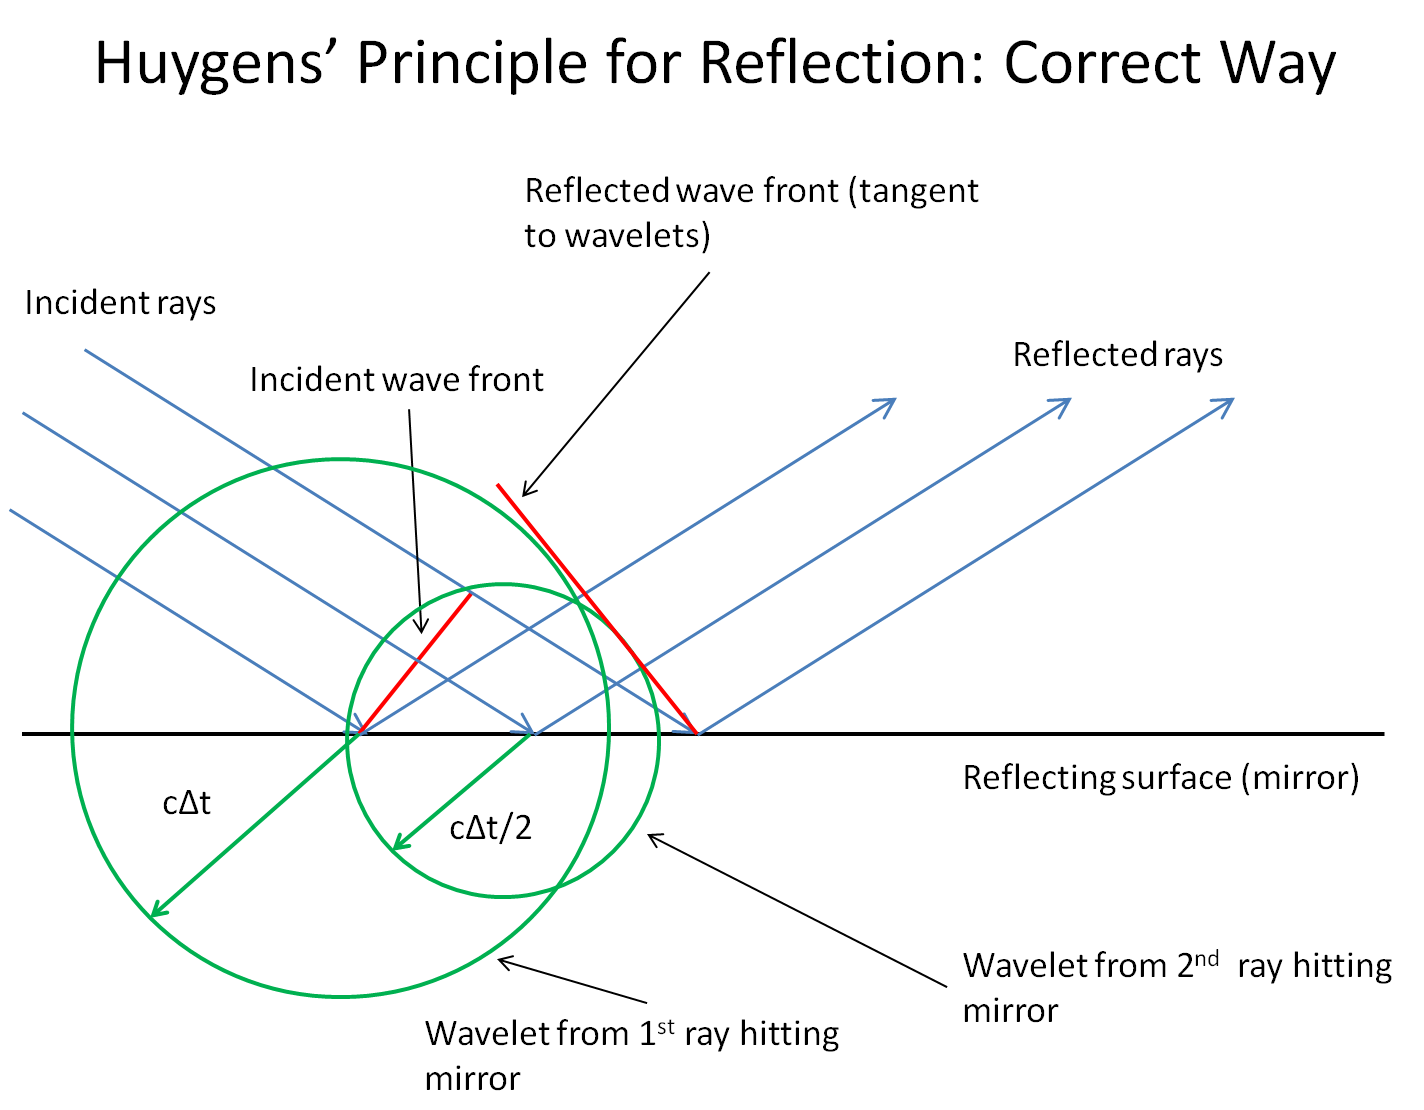 surface waves diagram ac low voltage wiring what is reflection on a microscopic level askscience